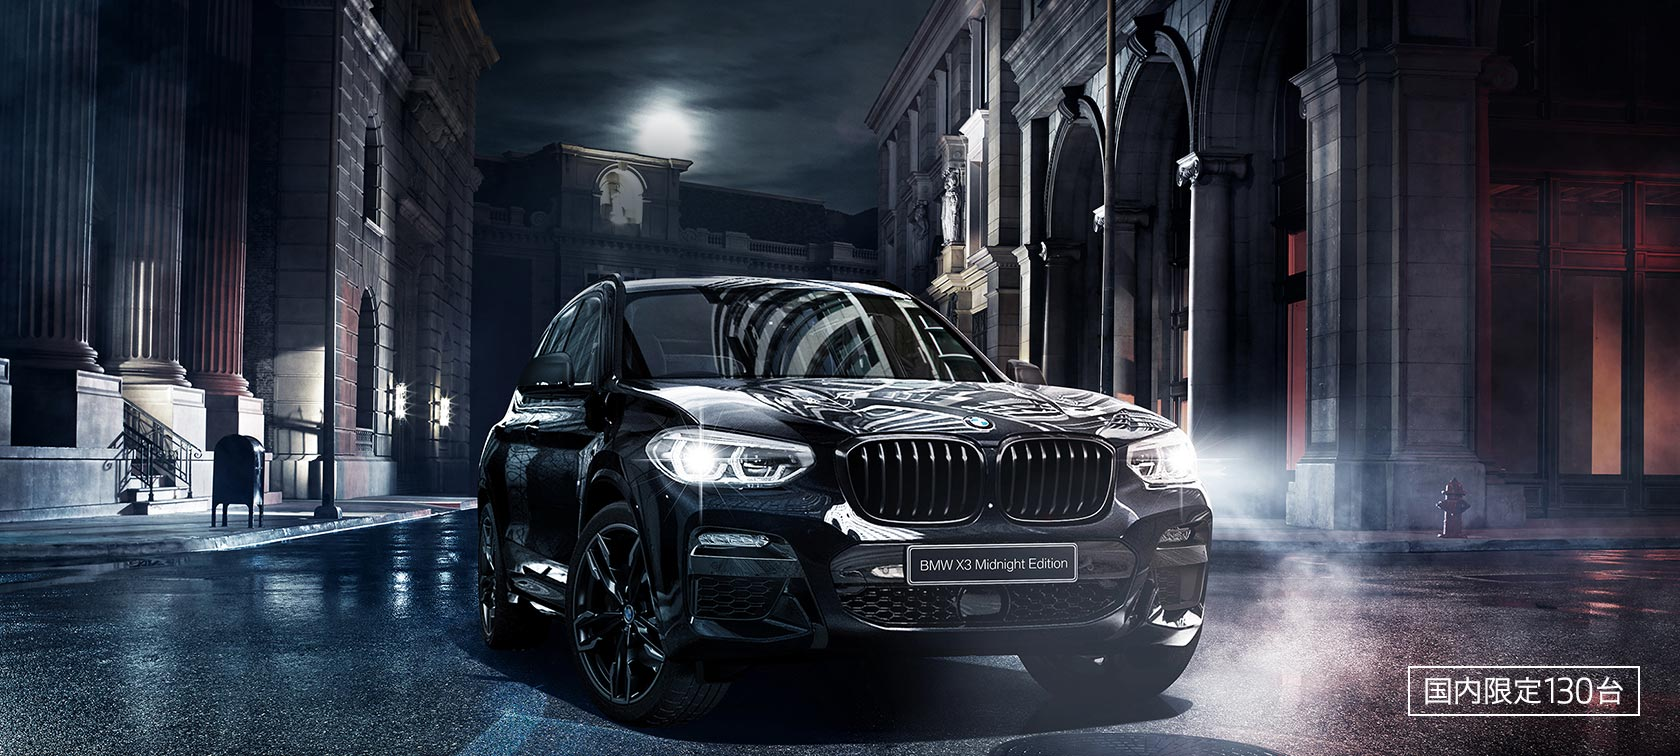 BMW X3 MIDNIGHT EDITION